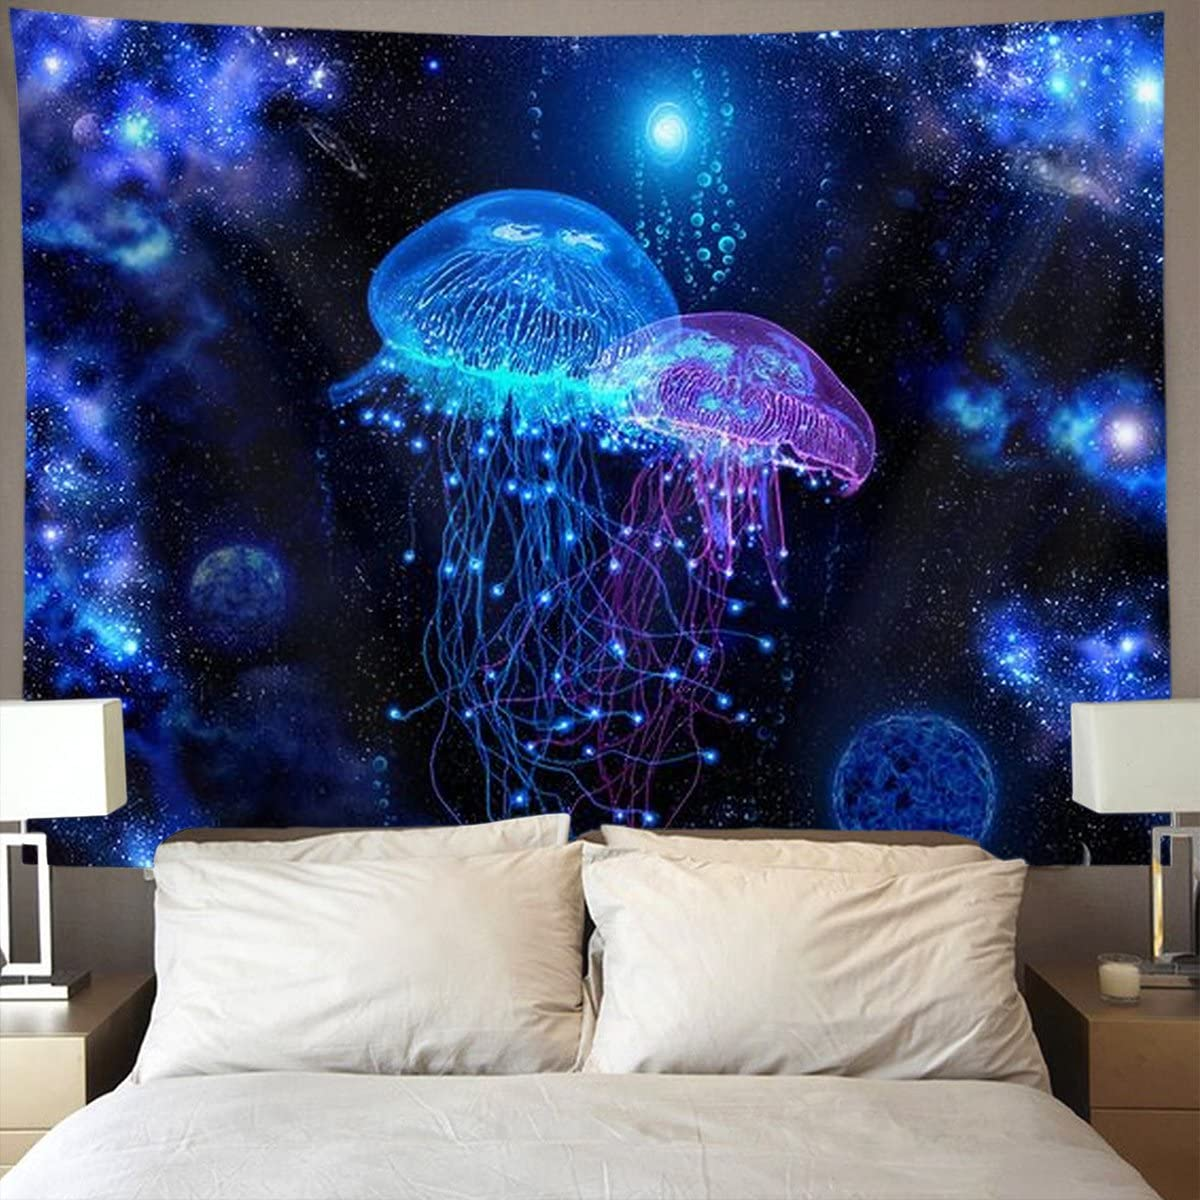 NiYoung Cosmic Galaxy Under sea Ocean Jellyfish Wall Tapestry Hippie Art Tapestry Wall Hanging Home Decor Extra Large tablecloths 60x70 inches for Bedroom Living Room Dorm Room